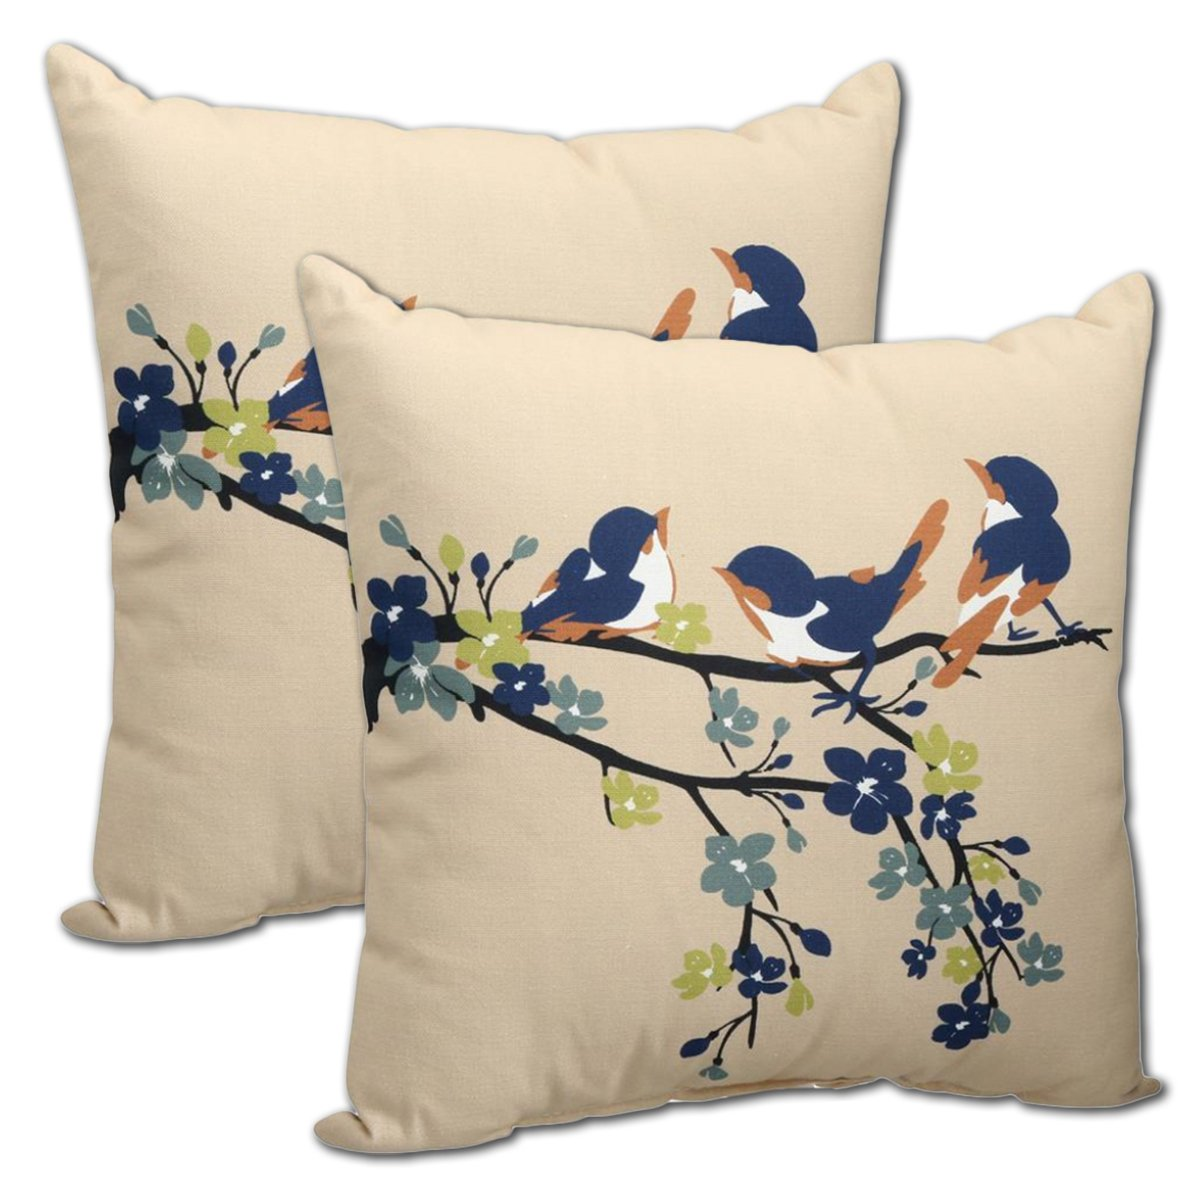 "Set of 2 Indoor/Outdoor Throw Pillow 16"" x 16"" x 4"" in Polyester Fabric Sand Birds by Comfort Classics Inc."